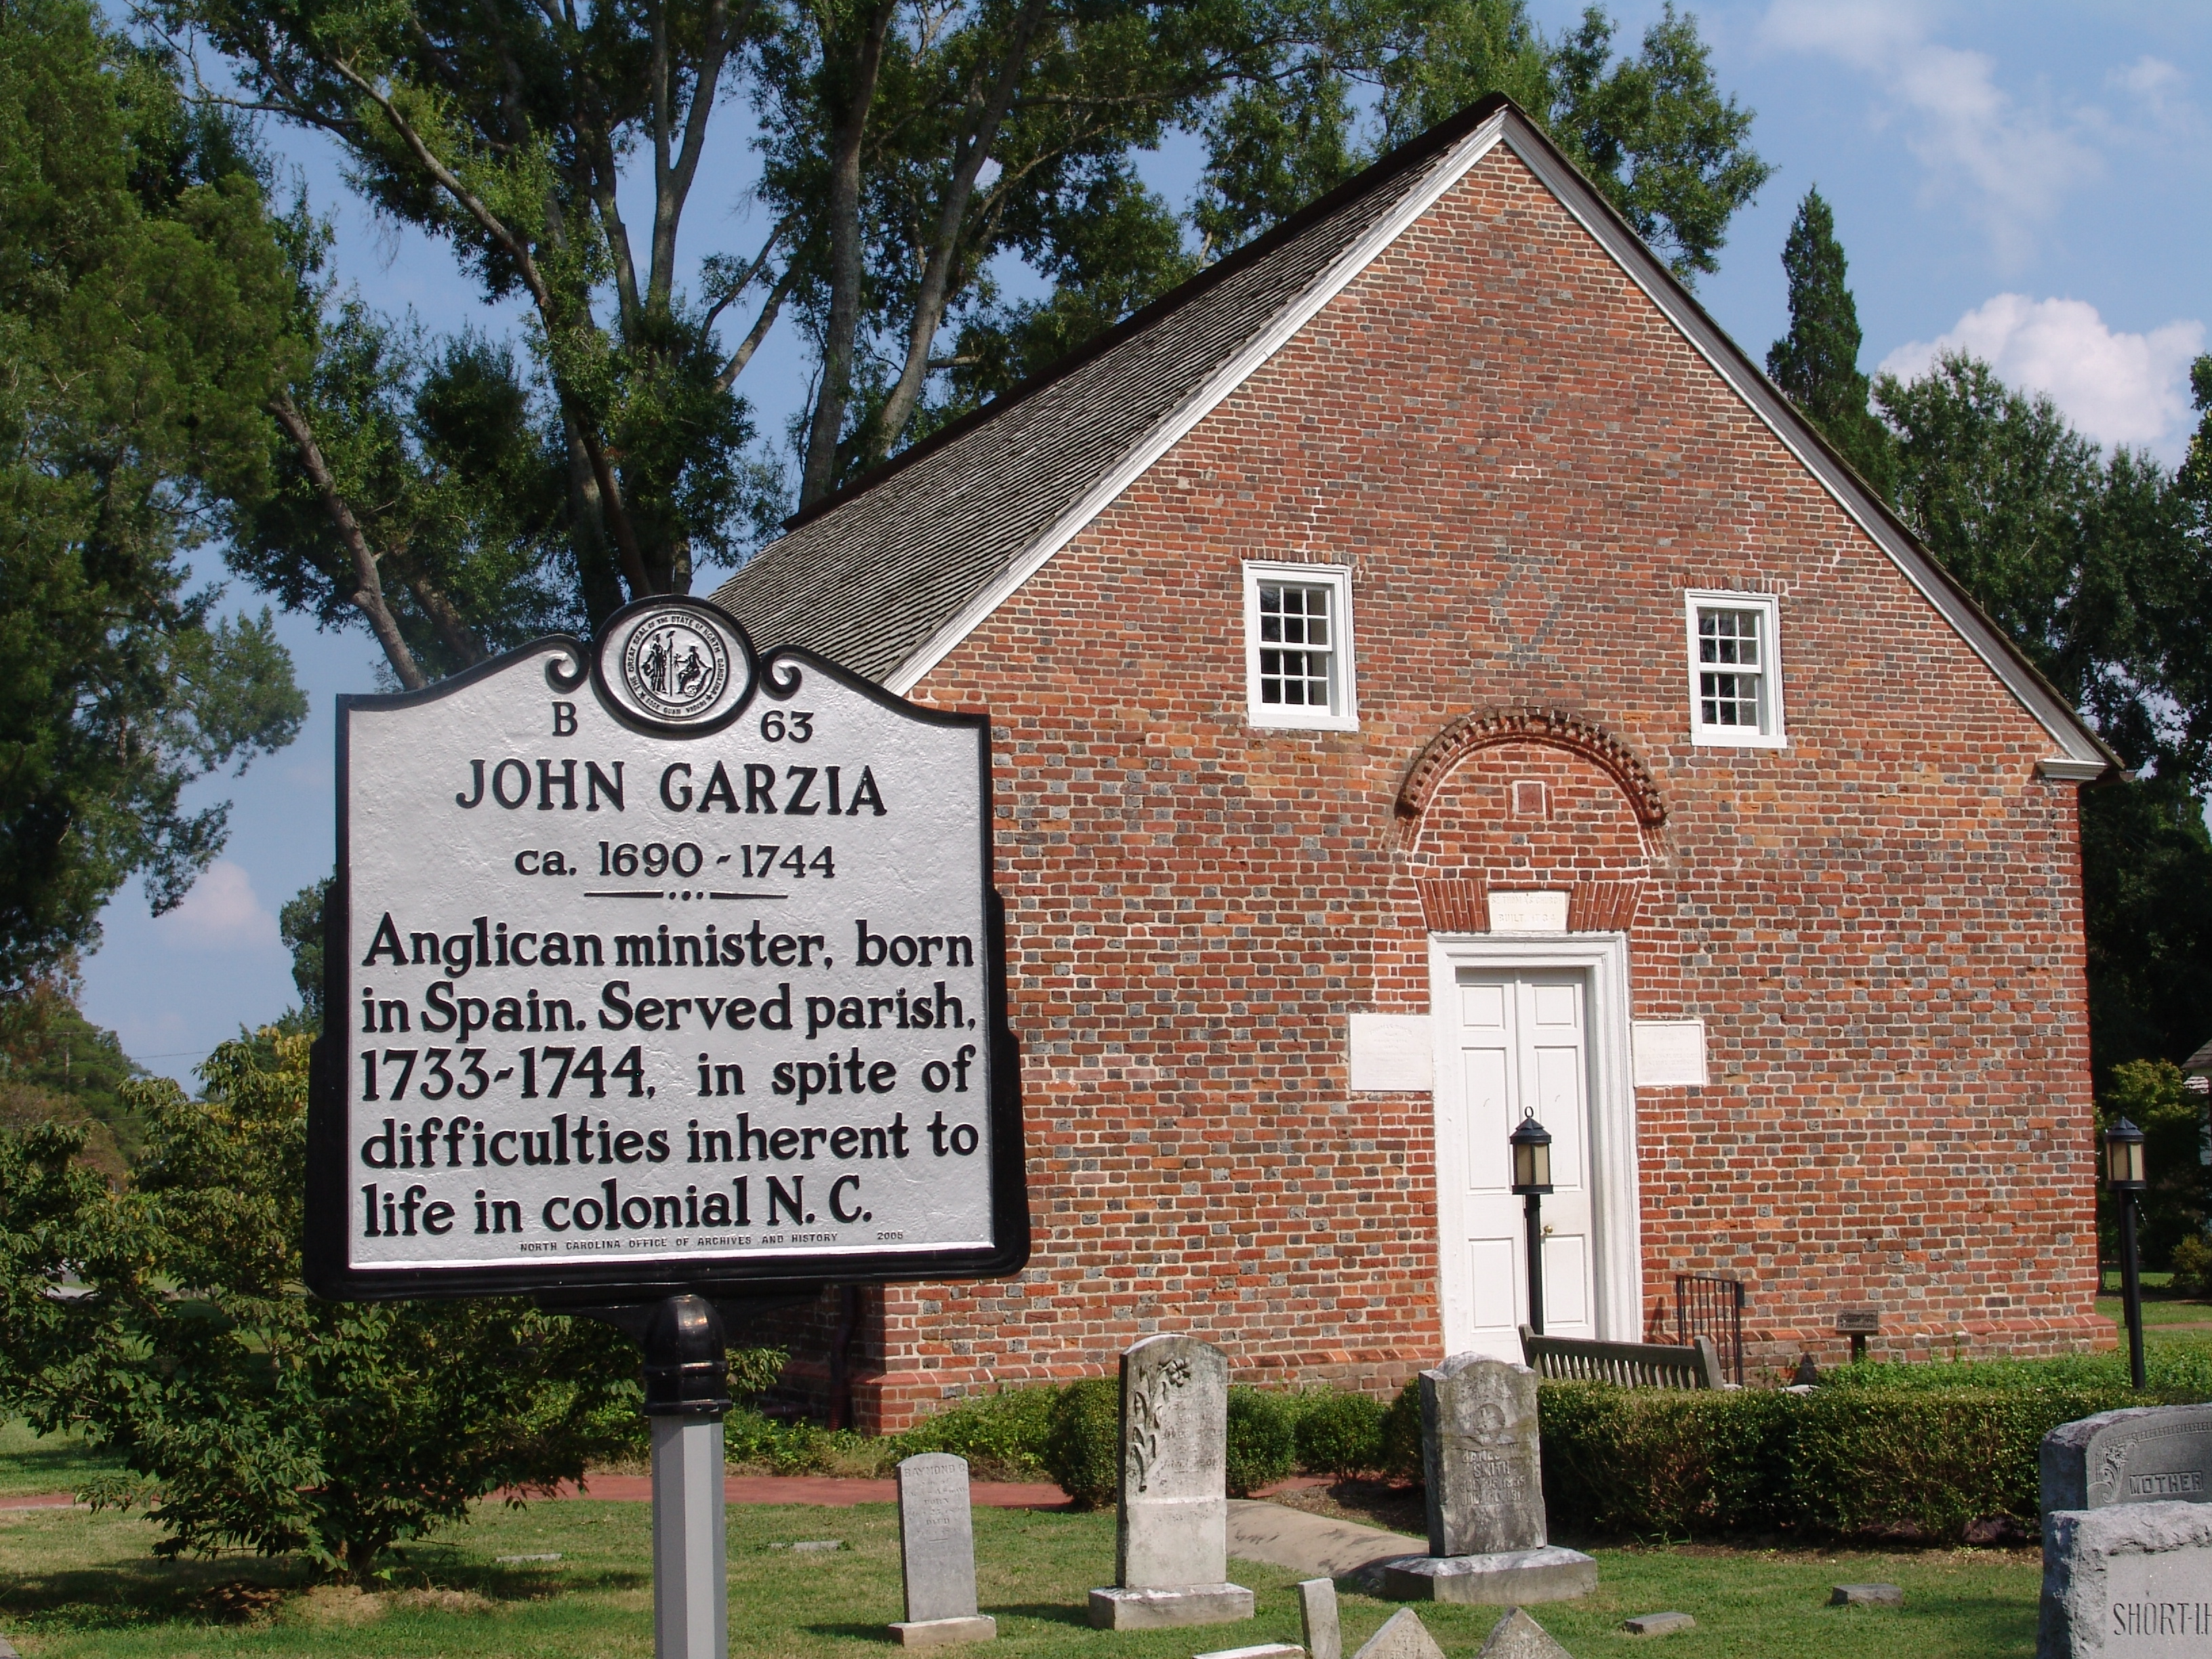 This historical marker is located next to St. Thomas Episcopal Church, the oldest remaining church in North Carolina.